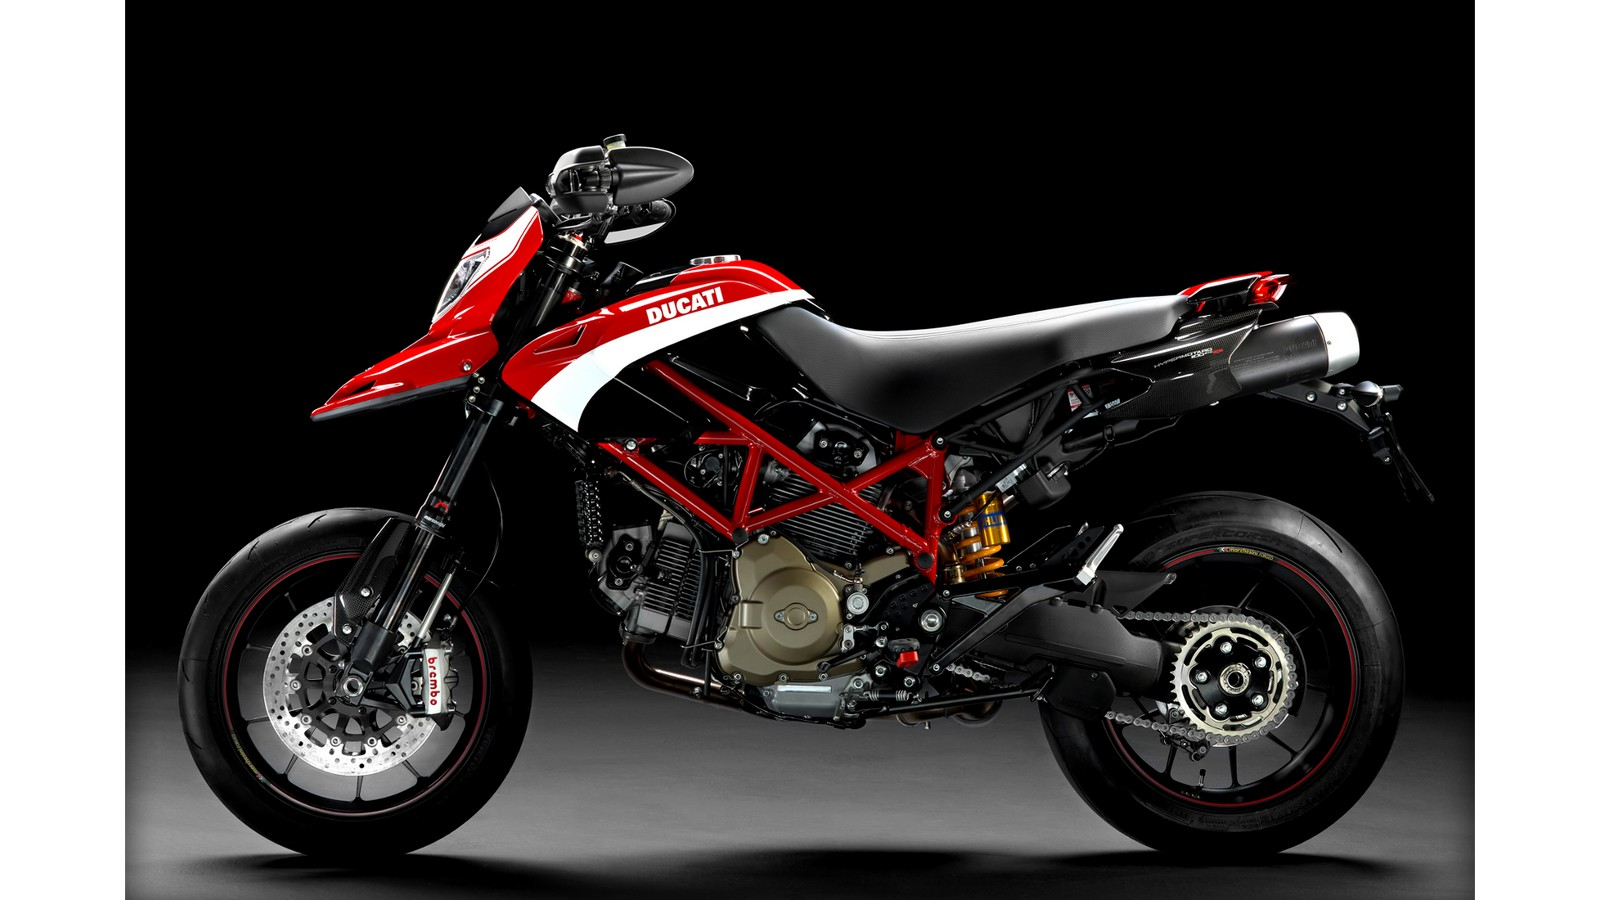 2013 ducati hypermotard 1100evo sp carries on the heritage